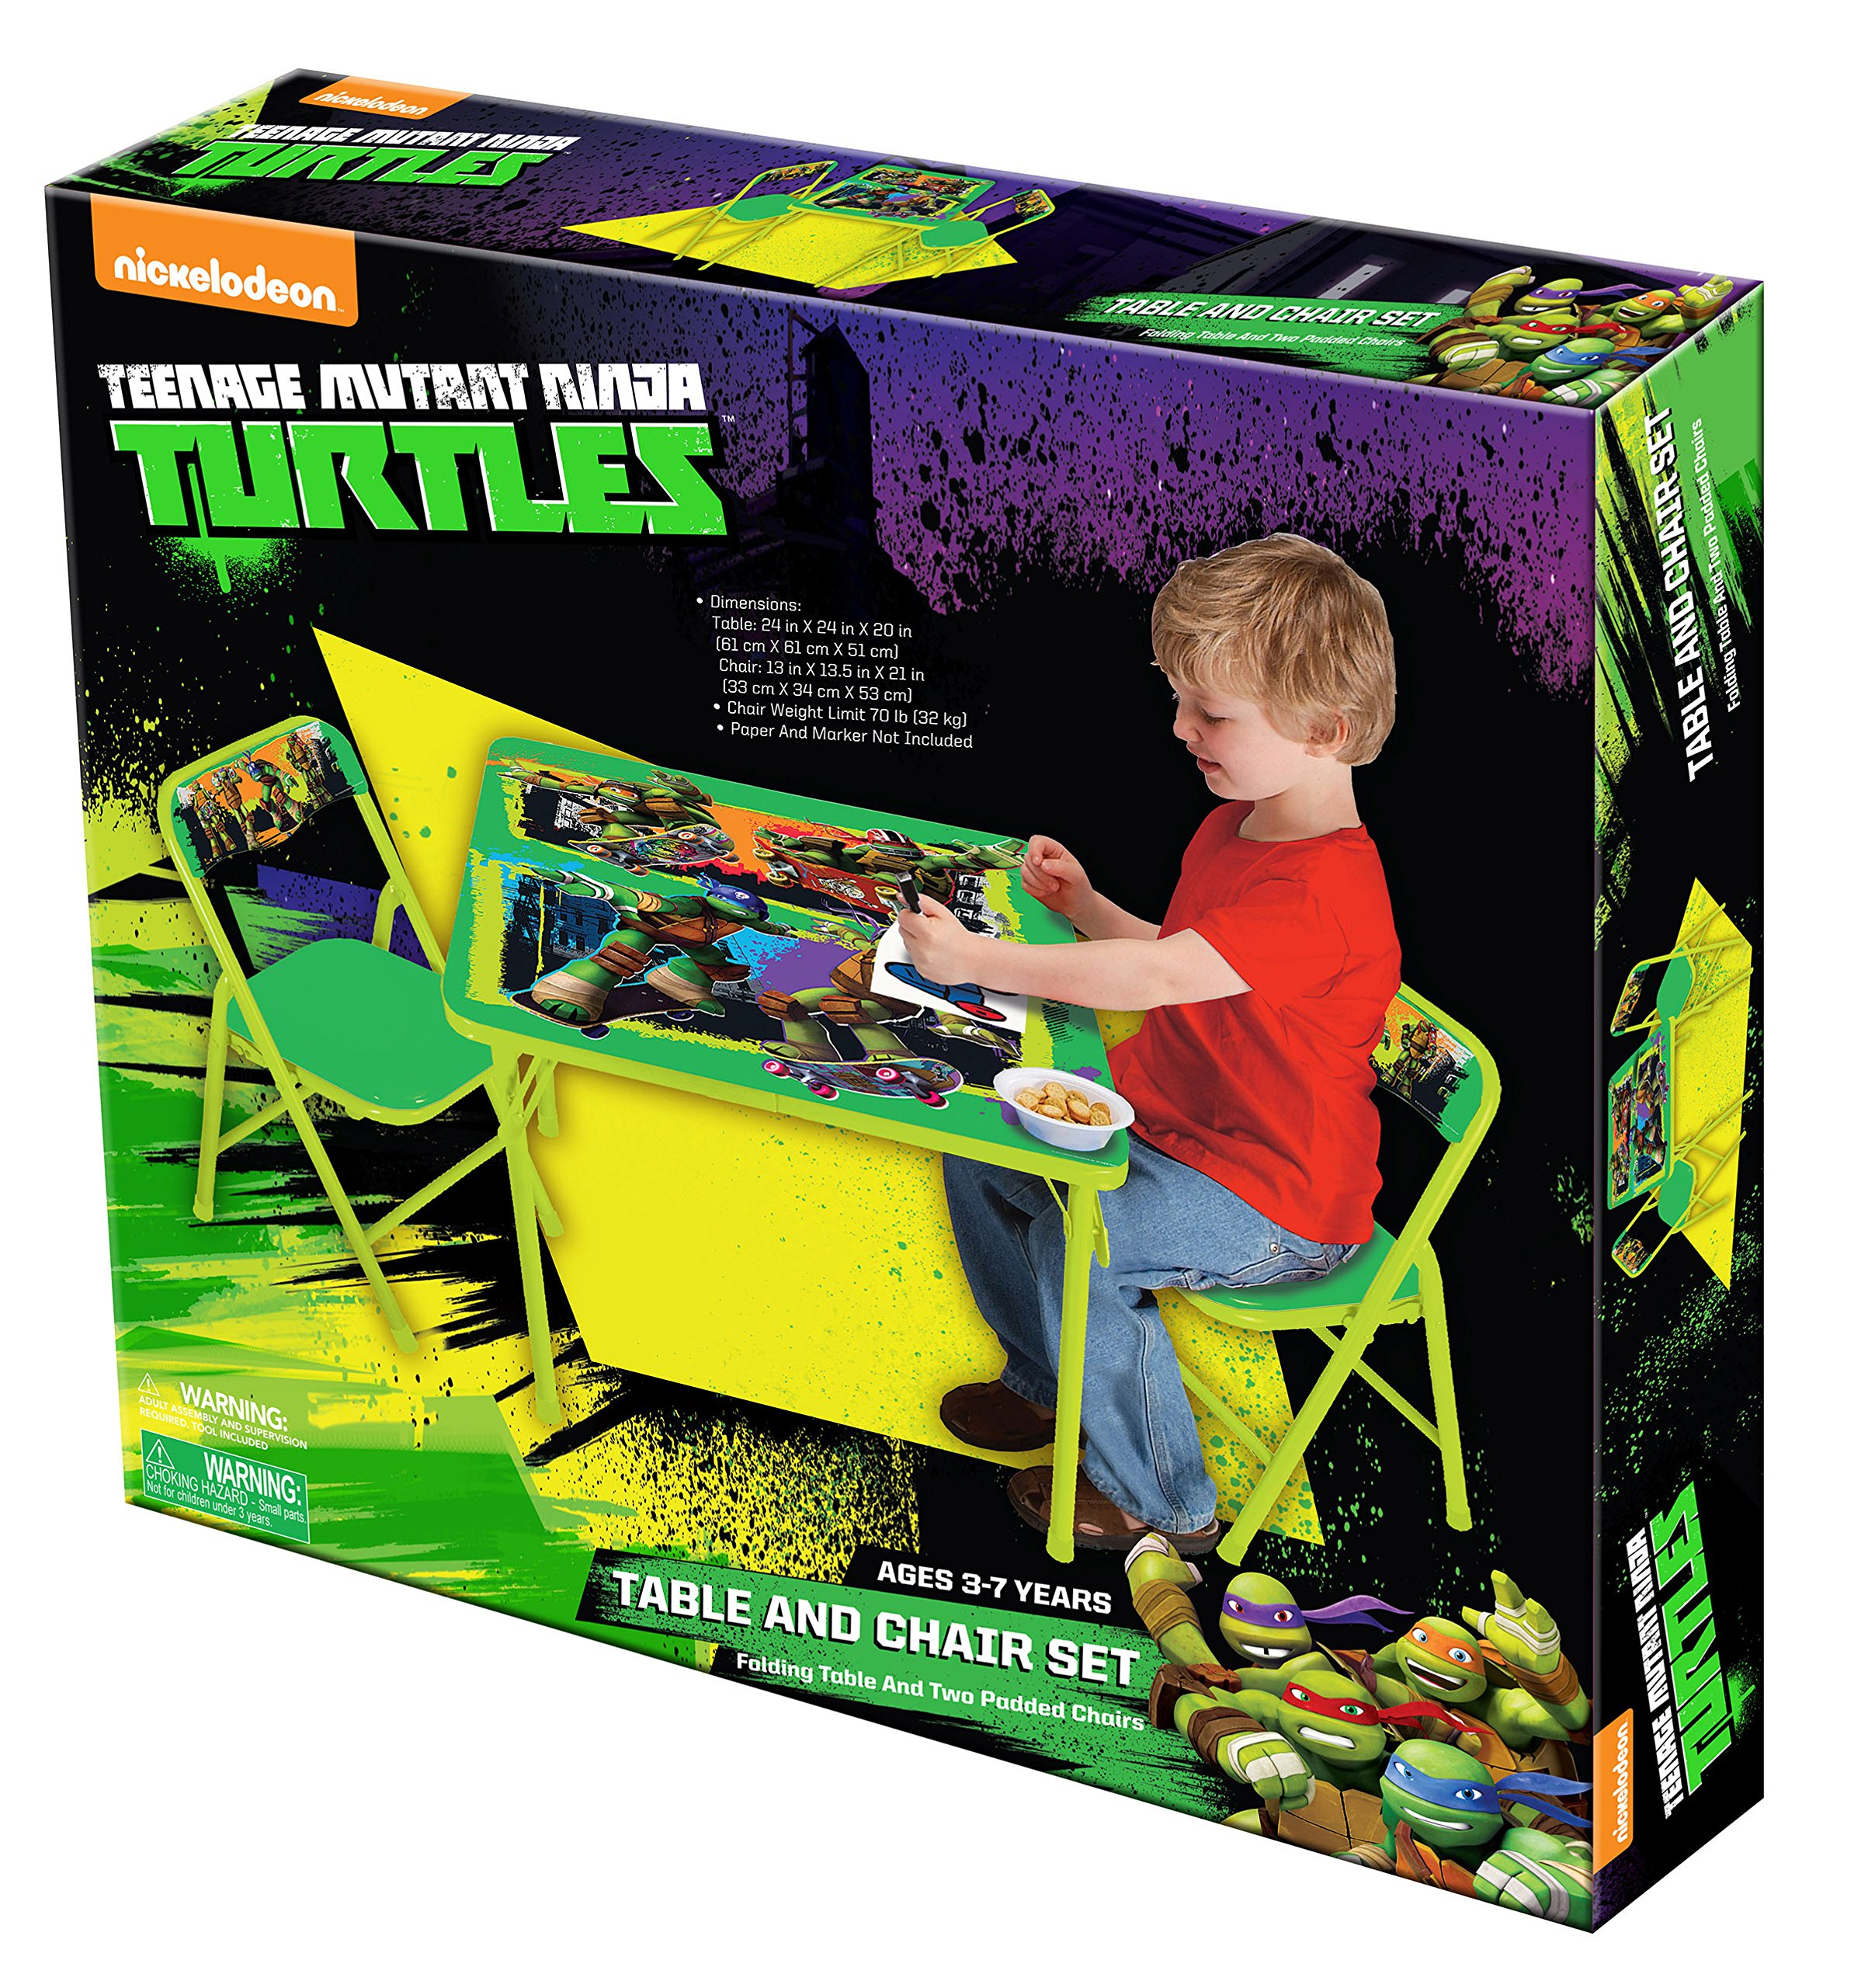 Teenage Mutant Ninja Turtles Maxin and Shellanxin Activity Table Set by Teenage Mutant Ninja Turtles